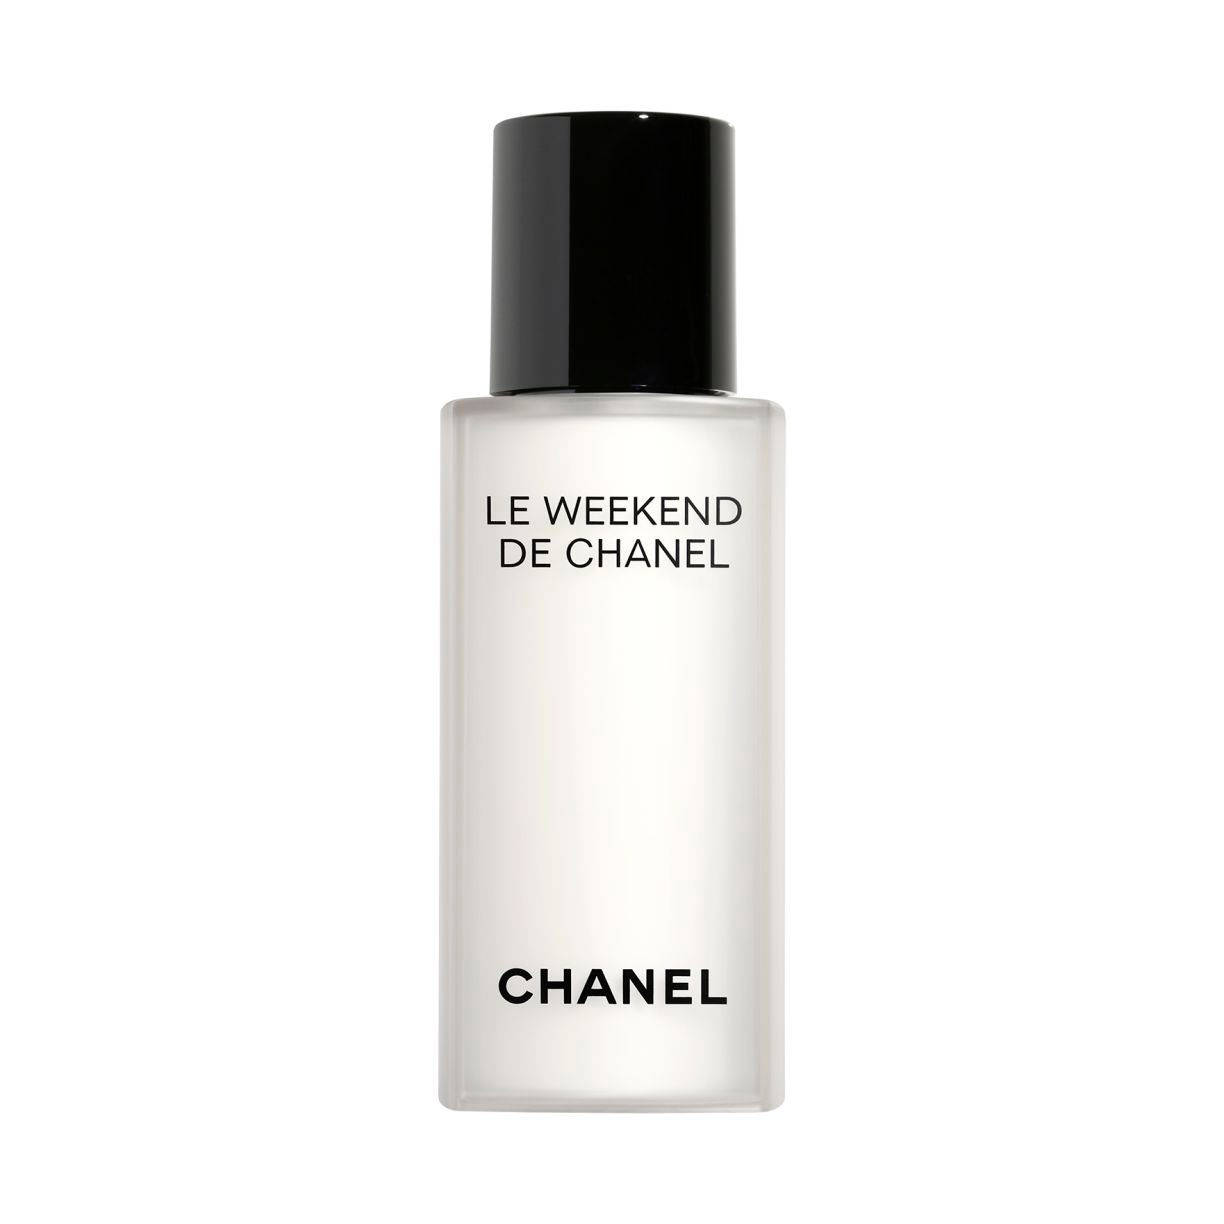 LE WEEKEND DE CHANEL VERNIEUWEN 50ml